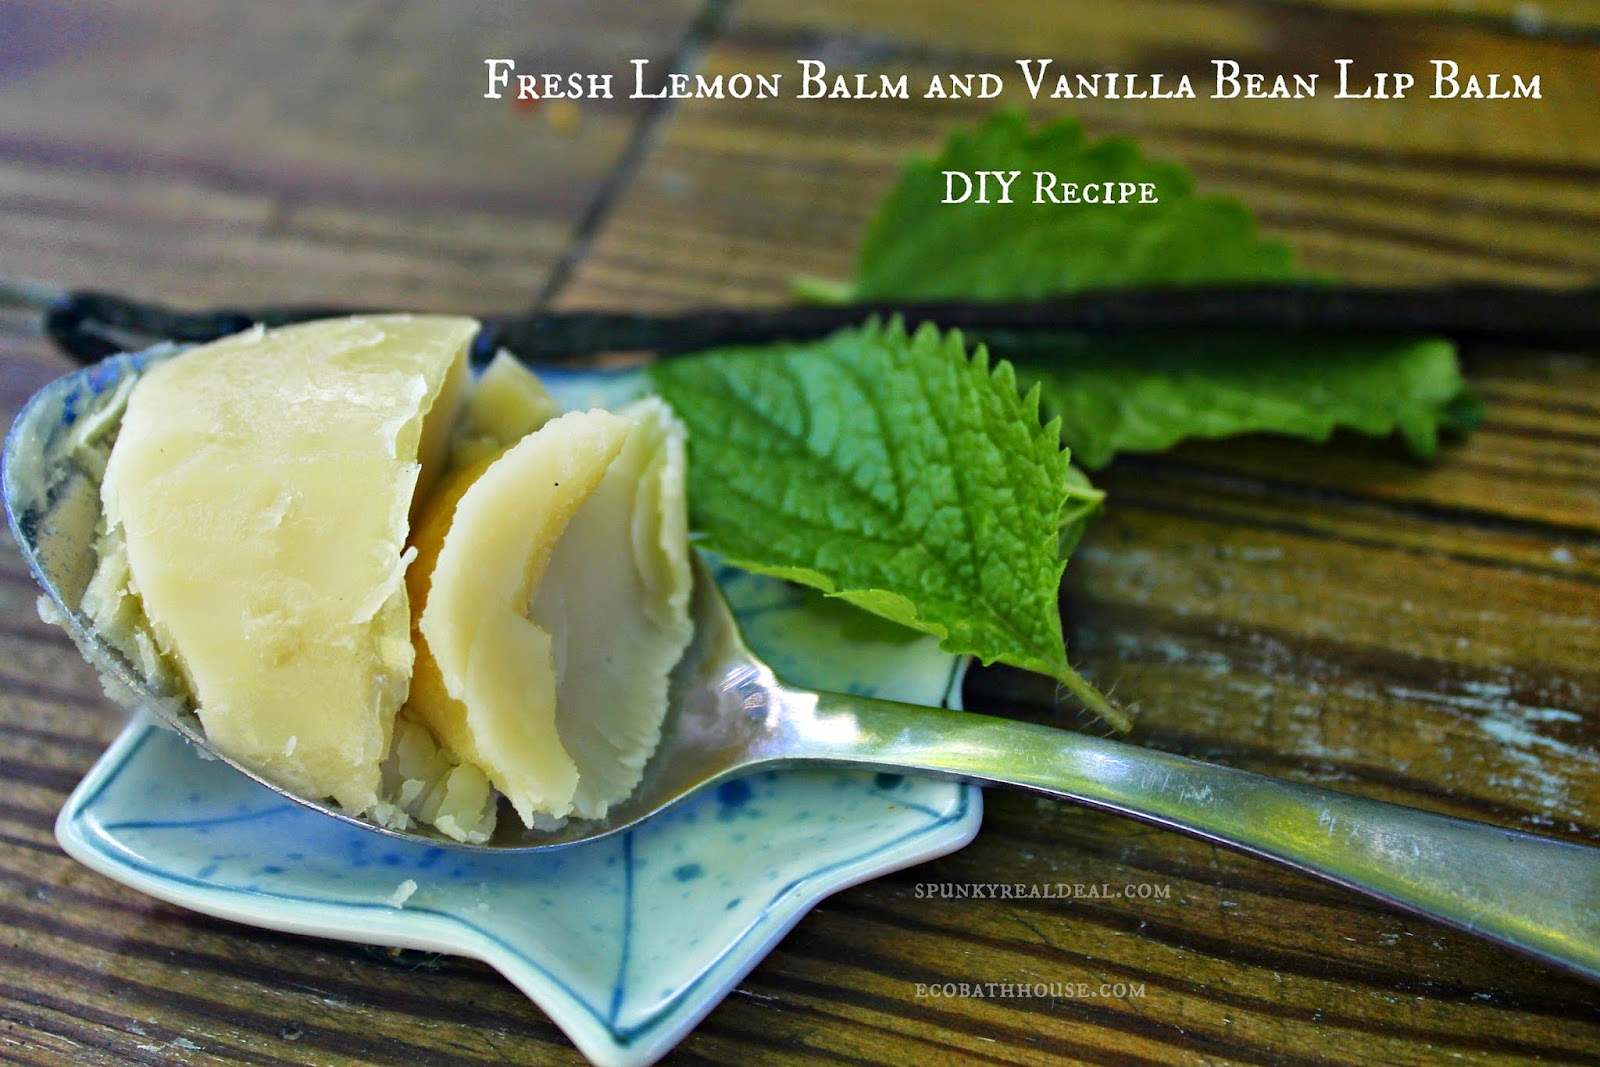 Fresh lip balm recipe {vanilla bean and lemon balm}